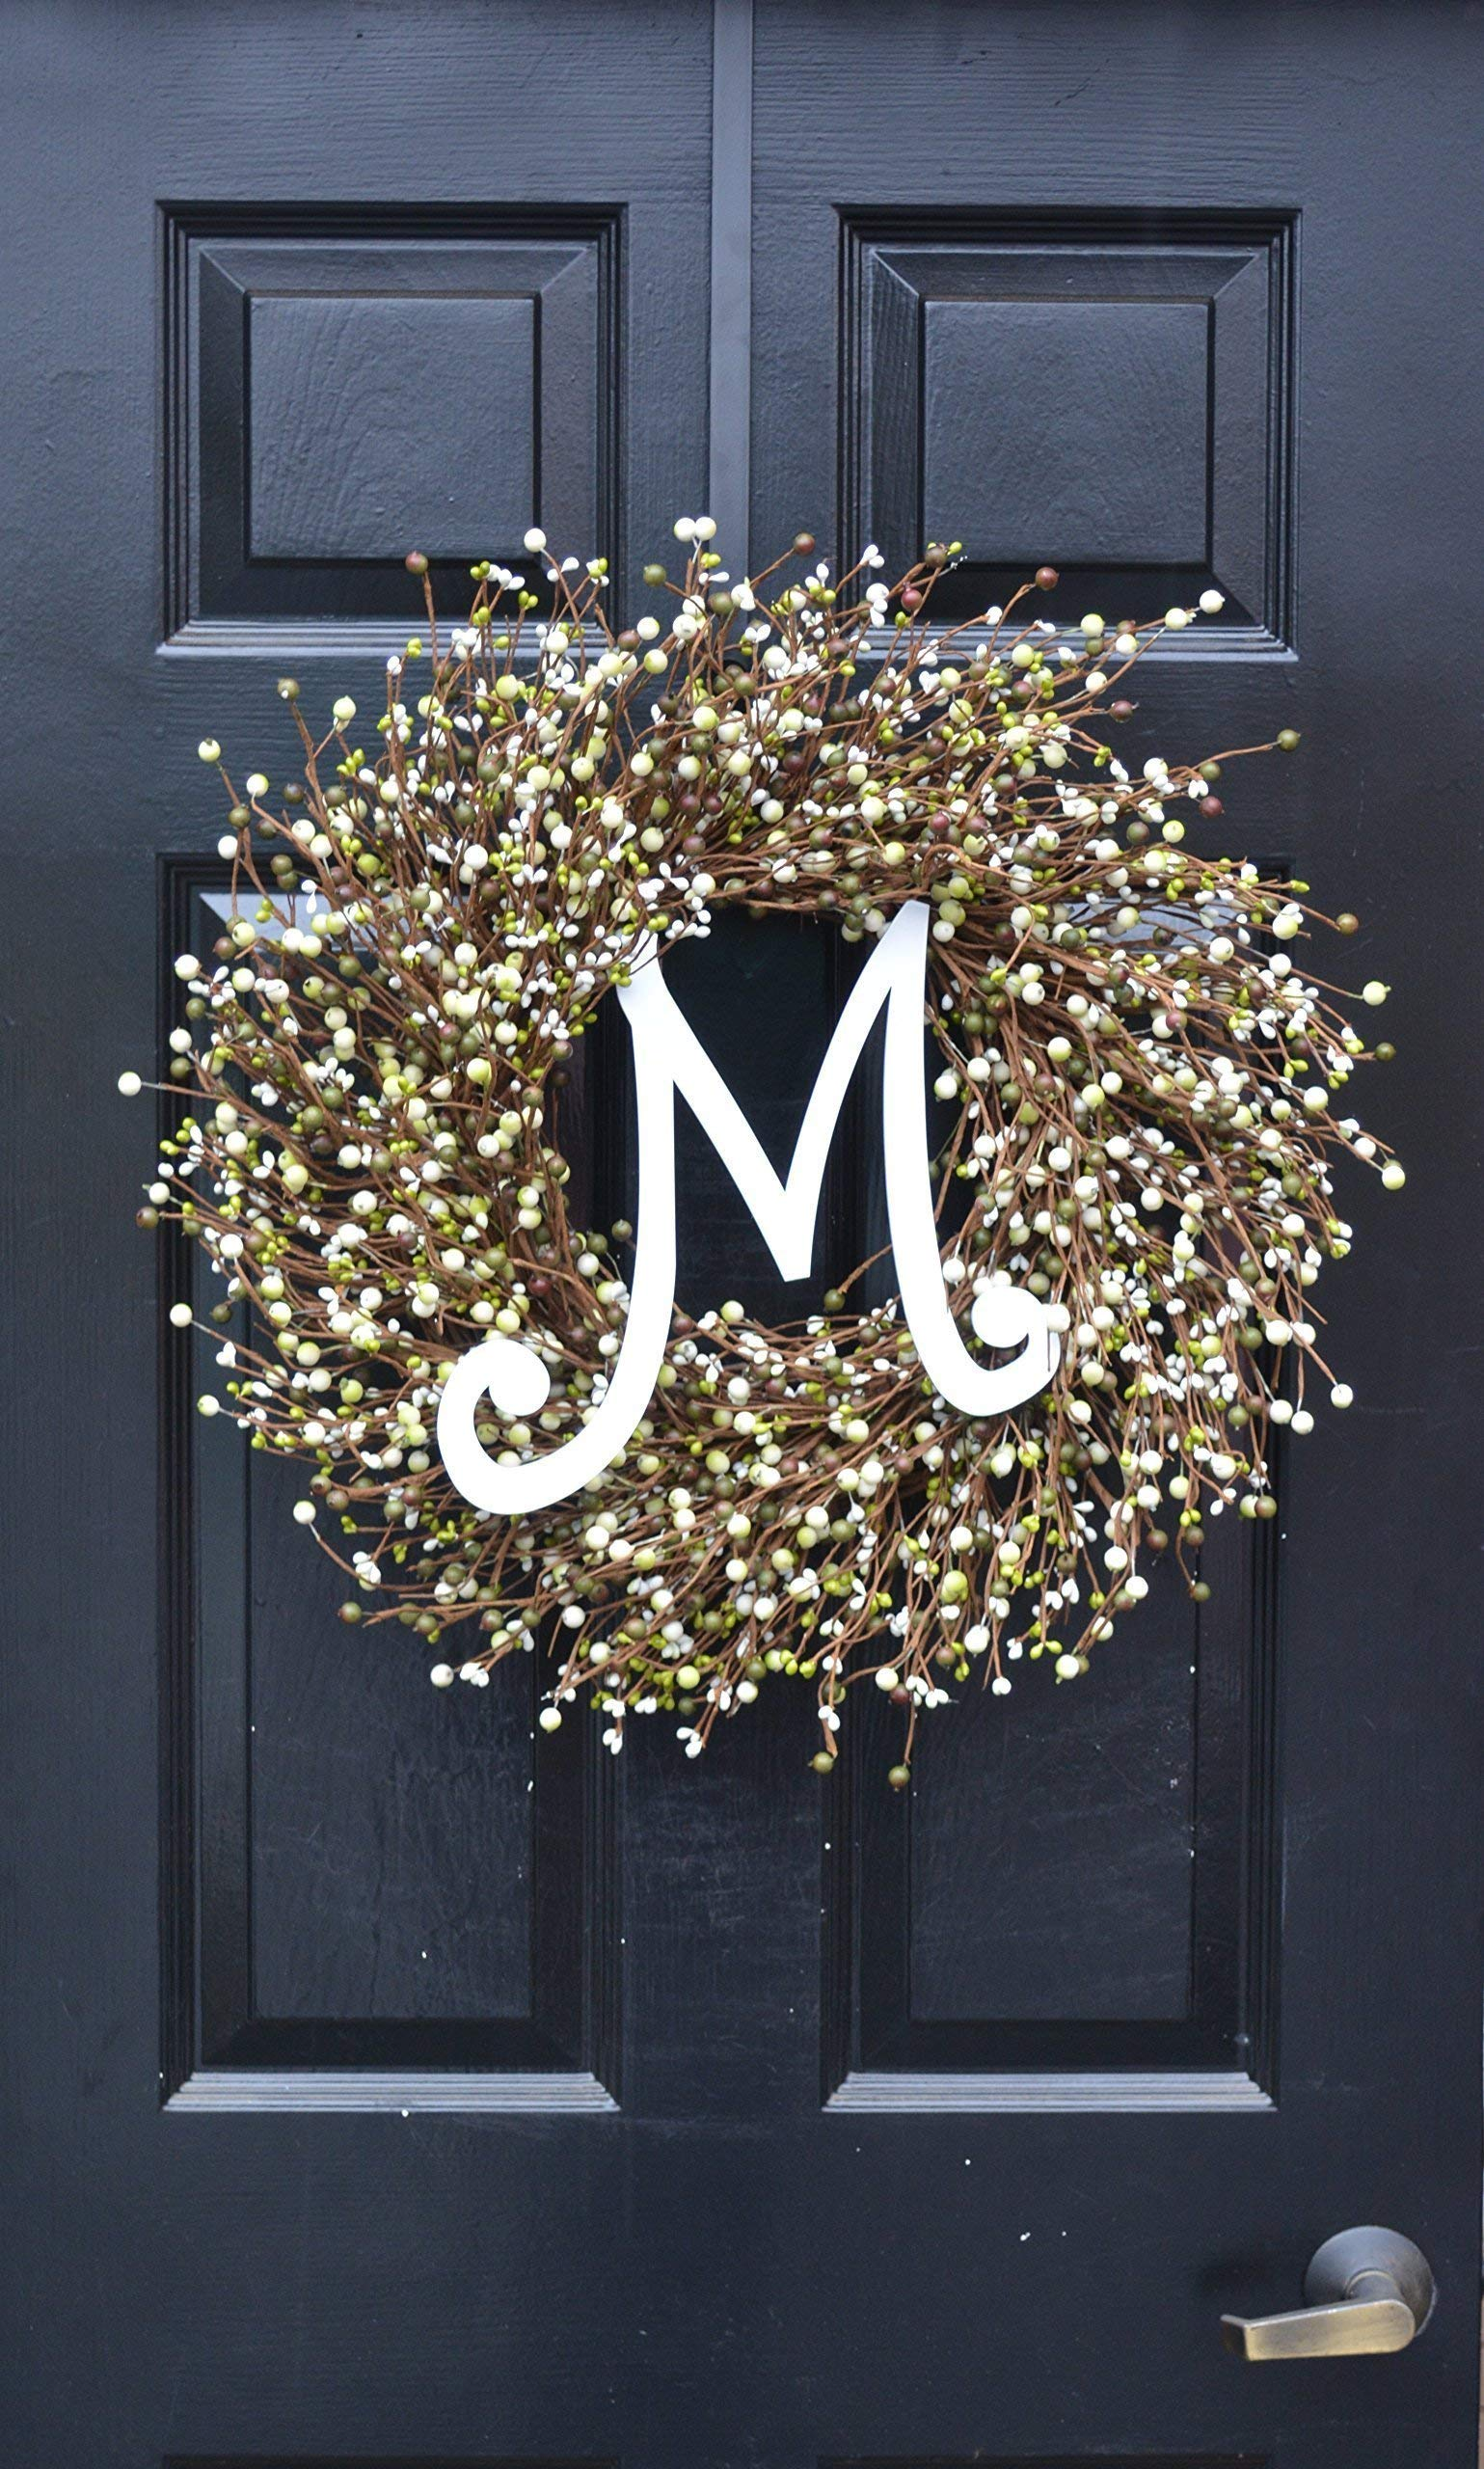 Elegant Holidays Handmade Cream, Green Berry Wreath with Monogram, Front Door Welcome Guests Outdoor Indoor Home Wall Accent Décor Great Spring, Easter, St Patricks Day, Christmas, All Seasons, 18-24 by Elegant Holidays Inc. (Image #4)